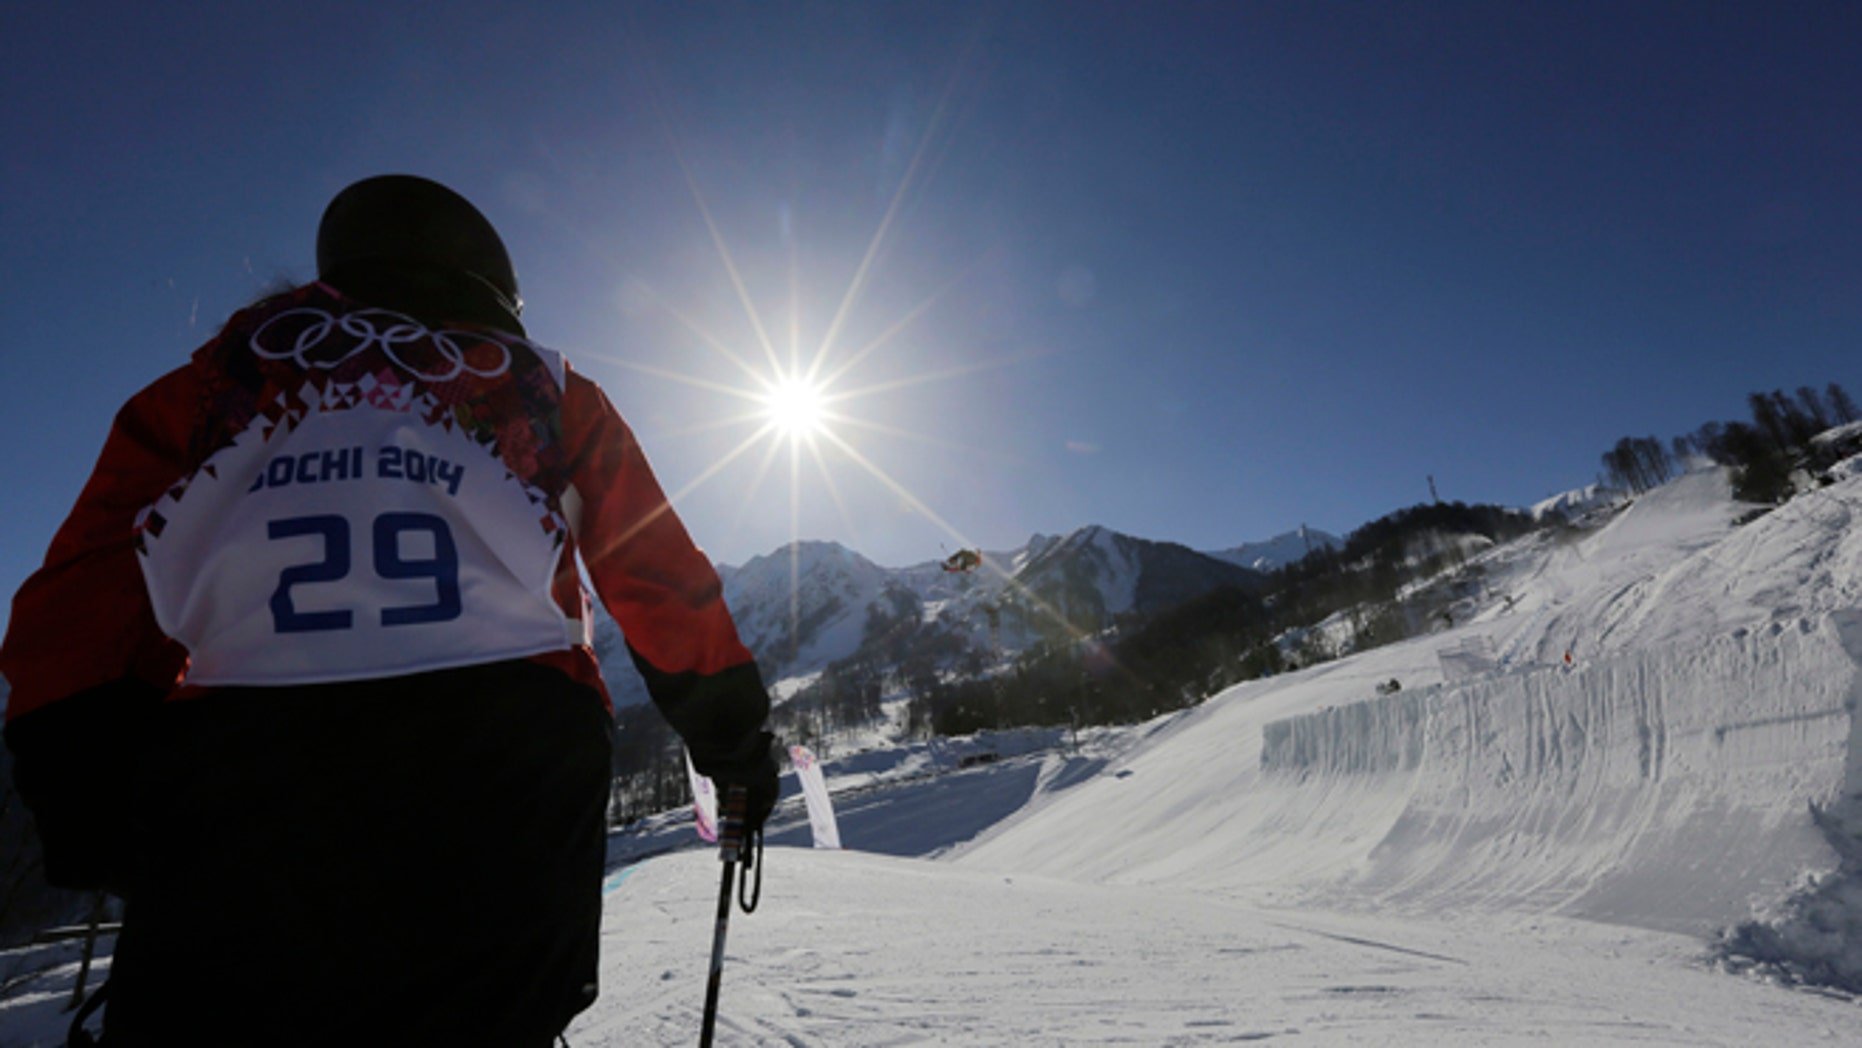 Paraguay's Julia Marino watches other competitors during a Ski Slopestyle training session at the Rosa Khutor Extreme Park, prior to the 2014 Winter Olympics, Tuesday, Feb. 4, 2014, in Krasnaya Polyana, Russia. (AP Photo/Andy Wong)